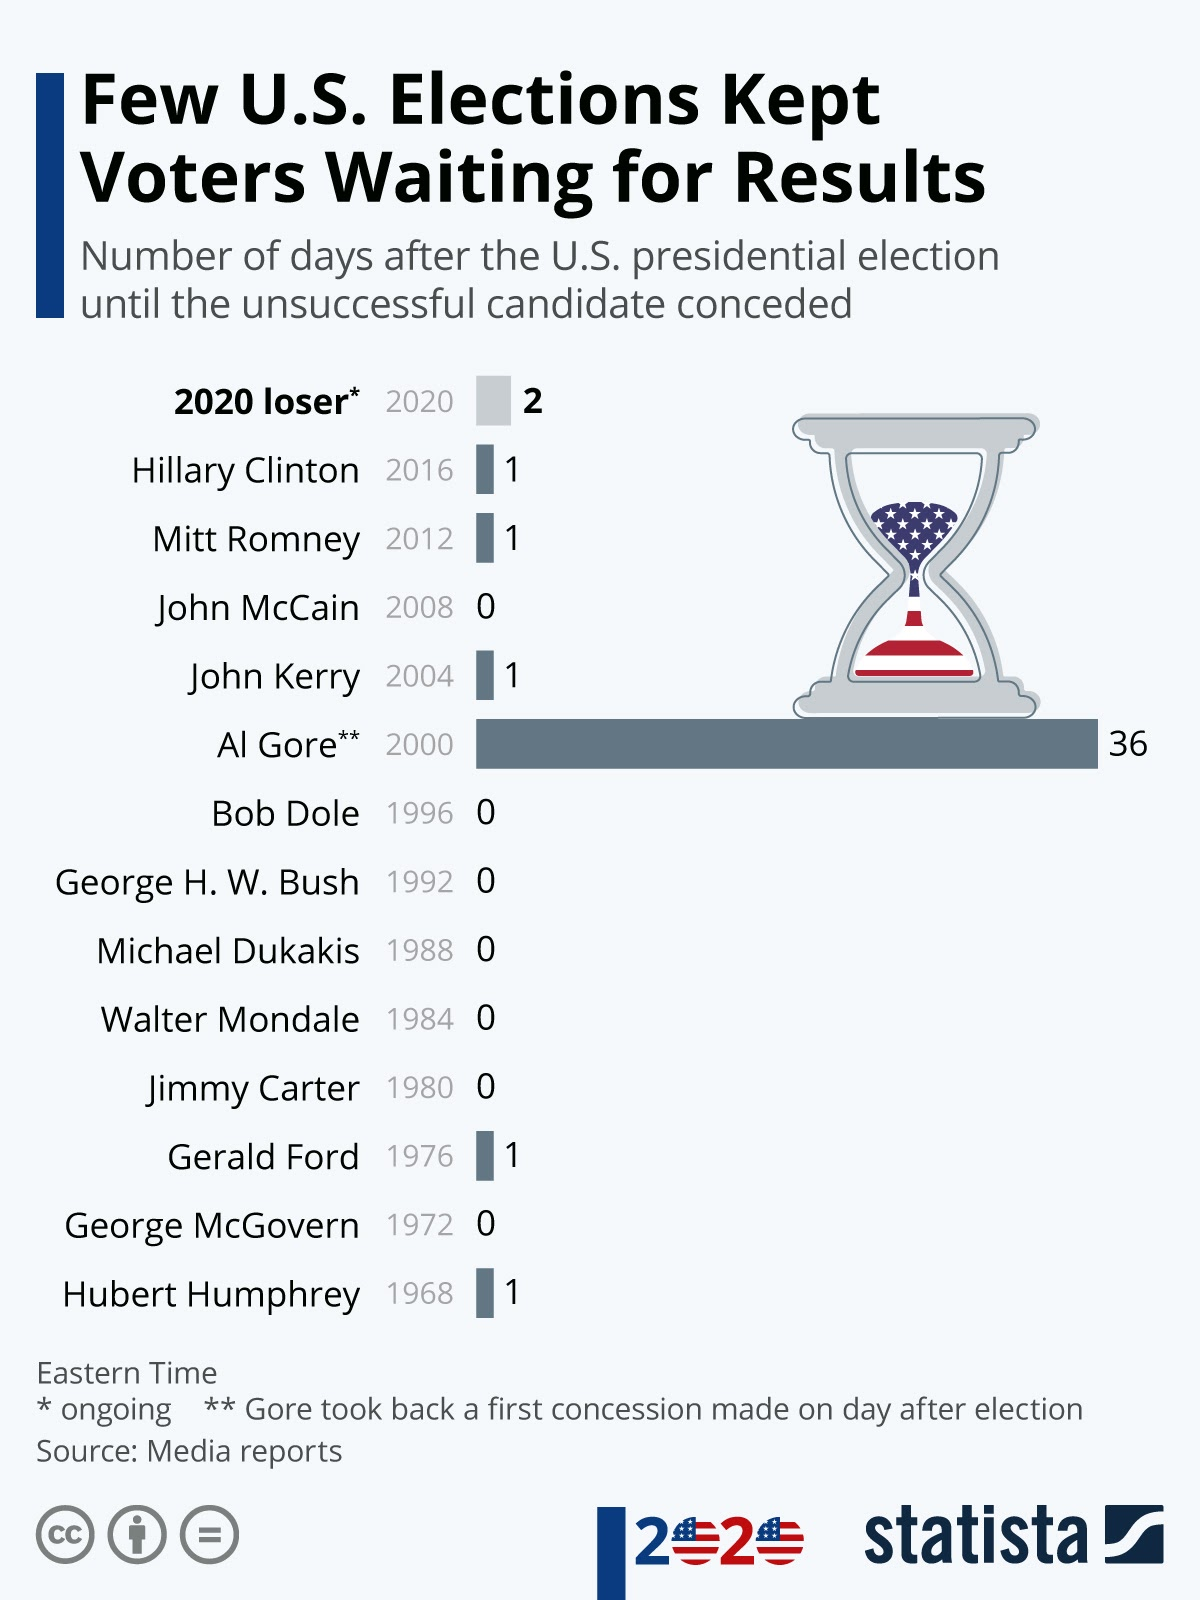 Few U.S. Elections Kept Voters Waiting for Results #infographic